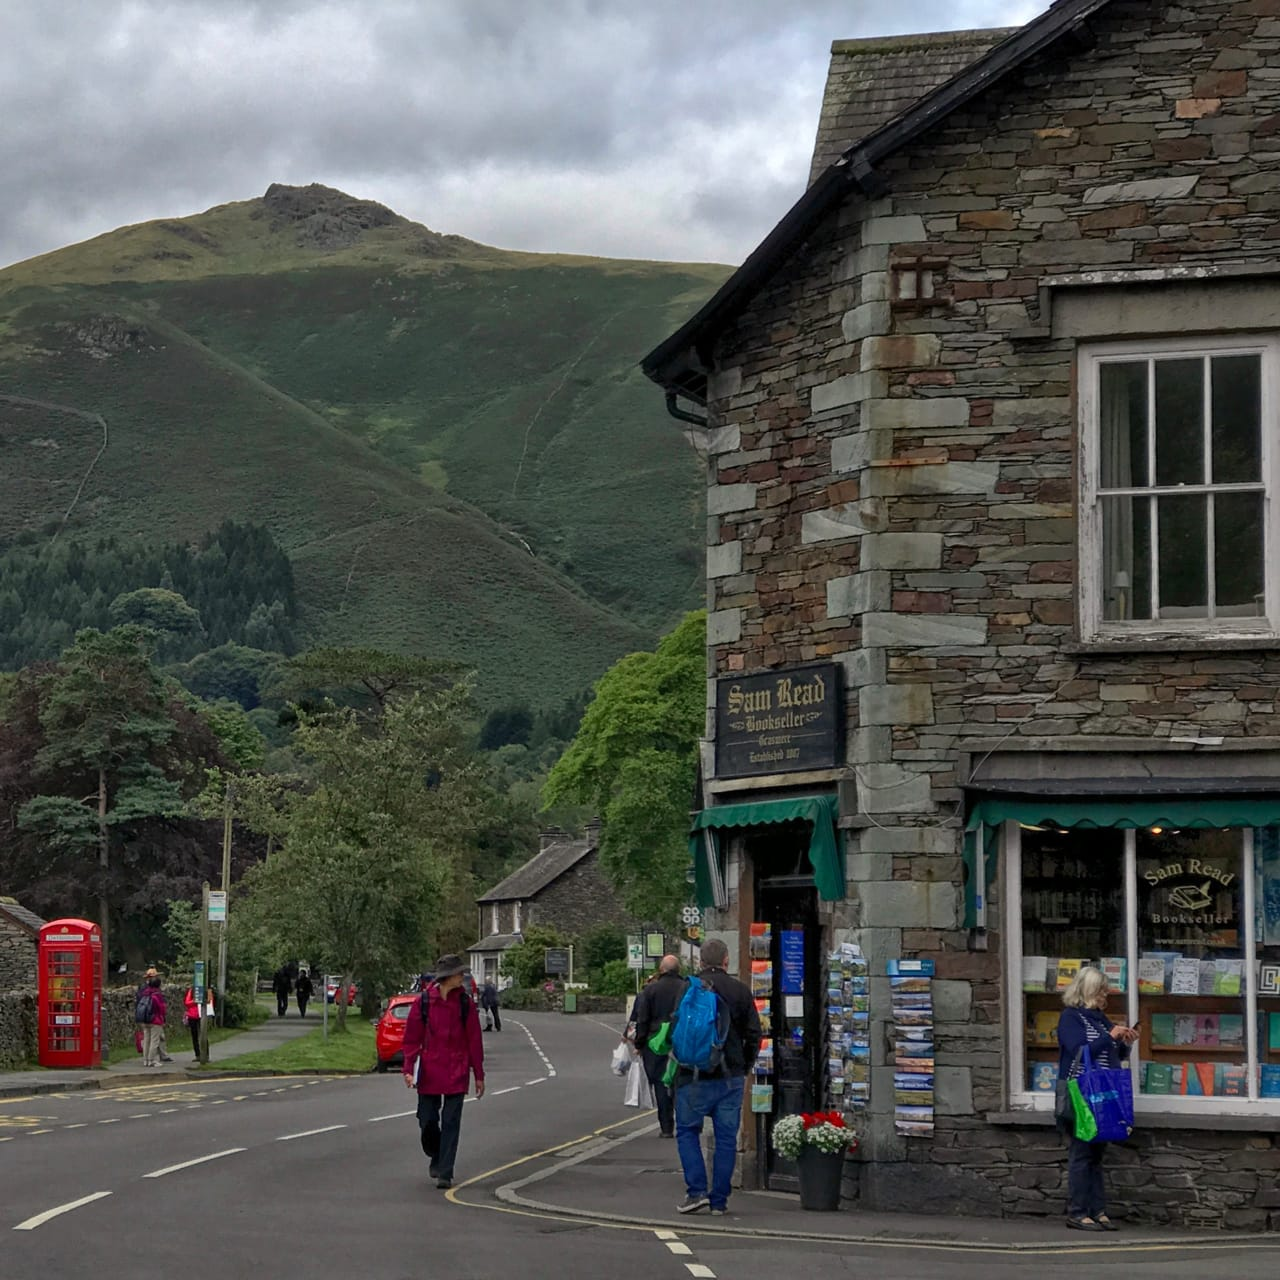 The front of Sam Read Bookshop with the looming summit of Heron Pike in the distance